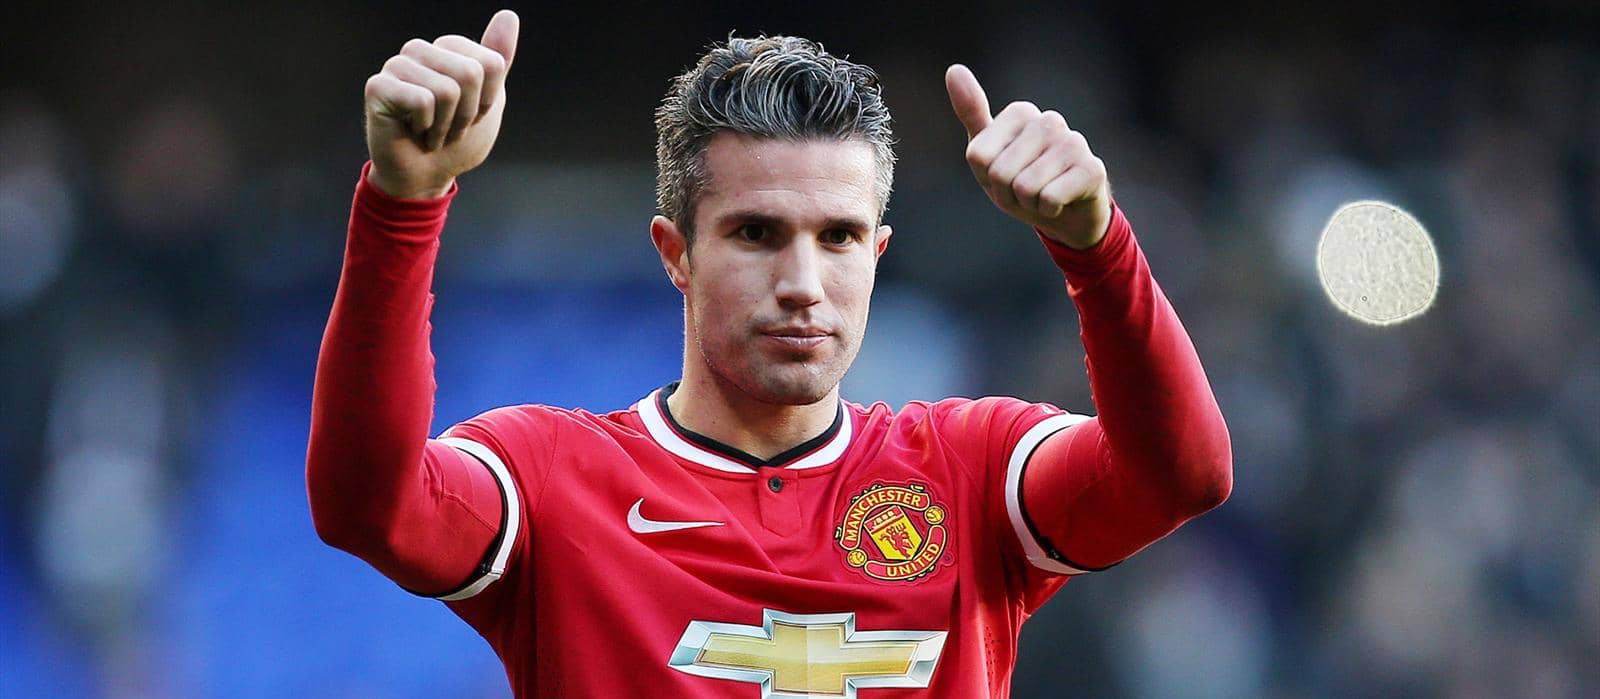 See who Robin van Persie chose between Fergie and Monsieur – it was a hard decision.